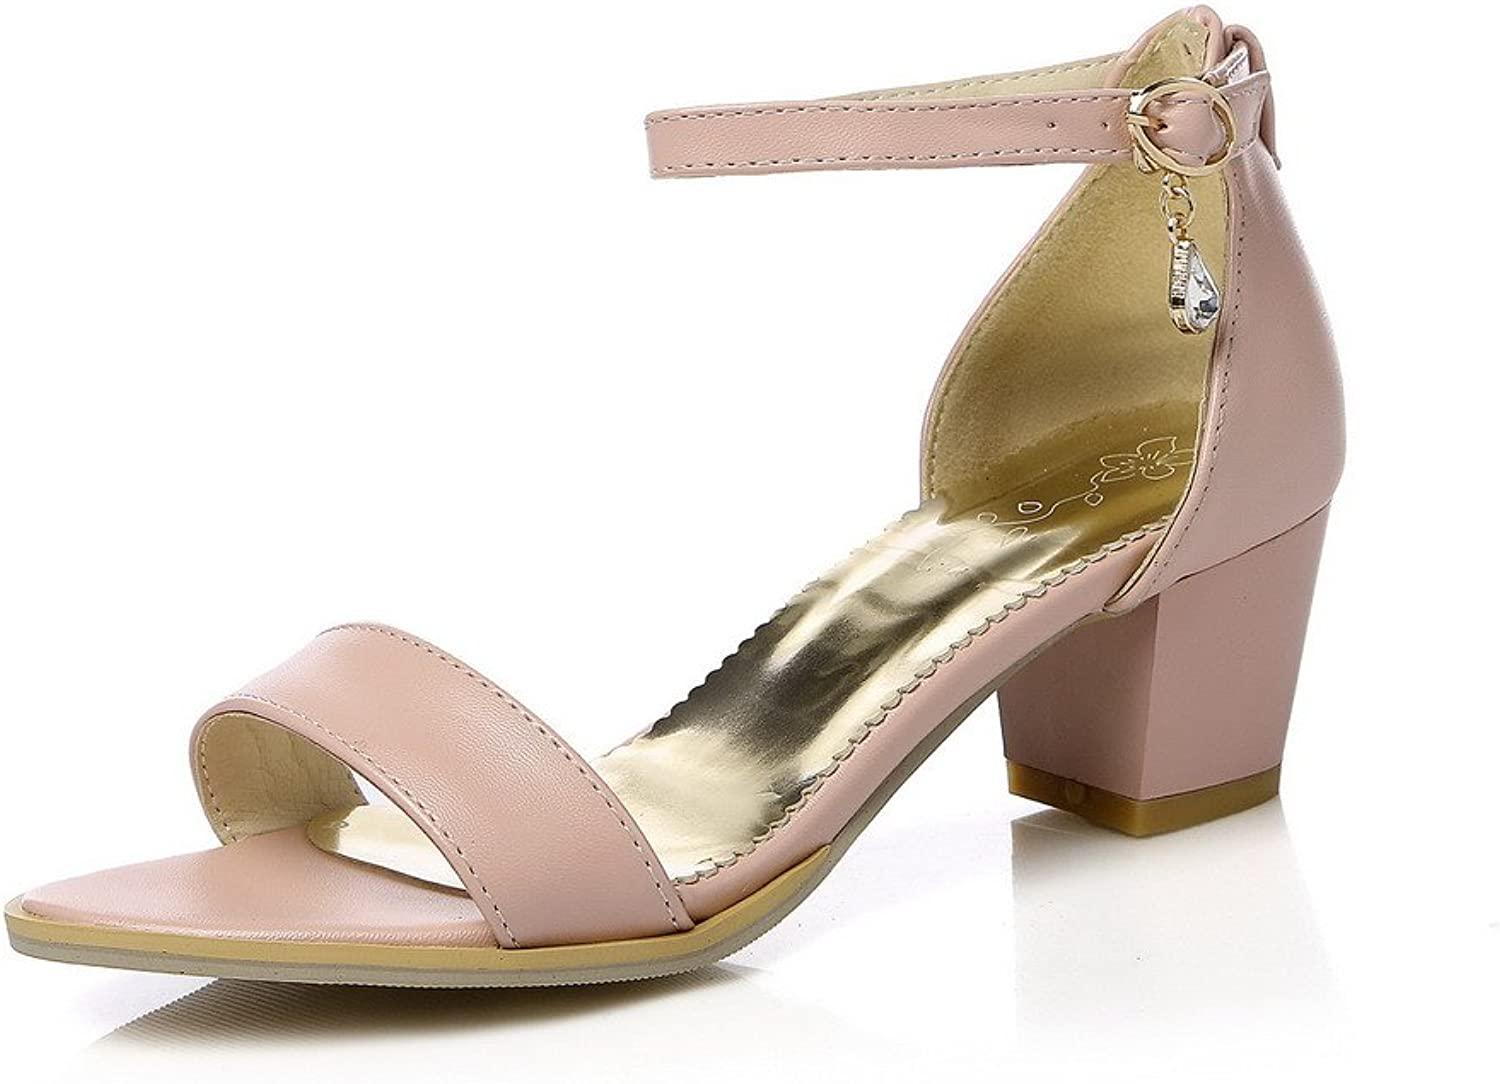 WeenFashion Women's Kitten-Heels Soft Material Solid Buckle Open Toe Sandals with Crystals